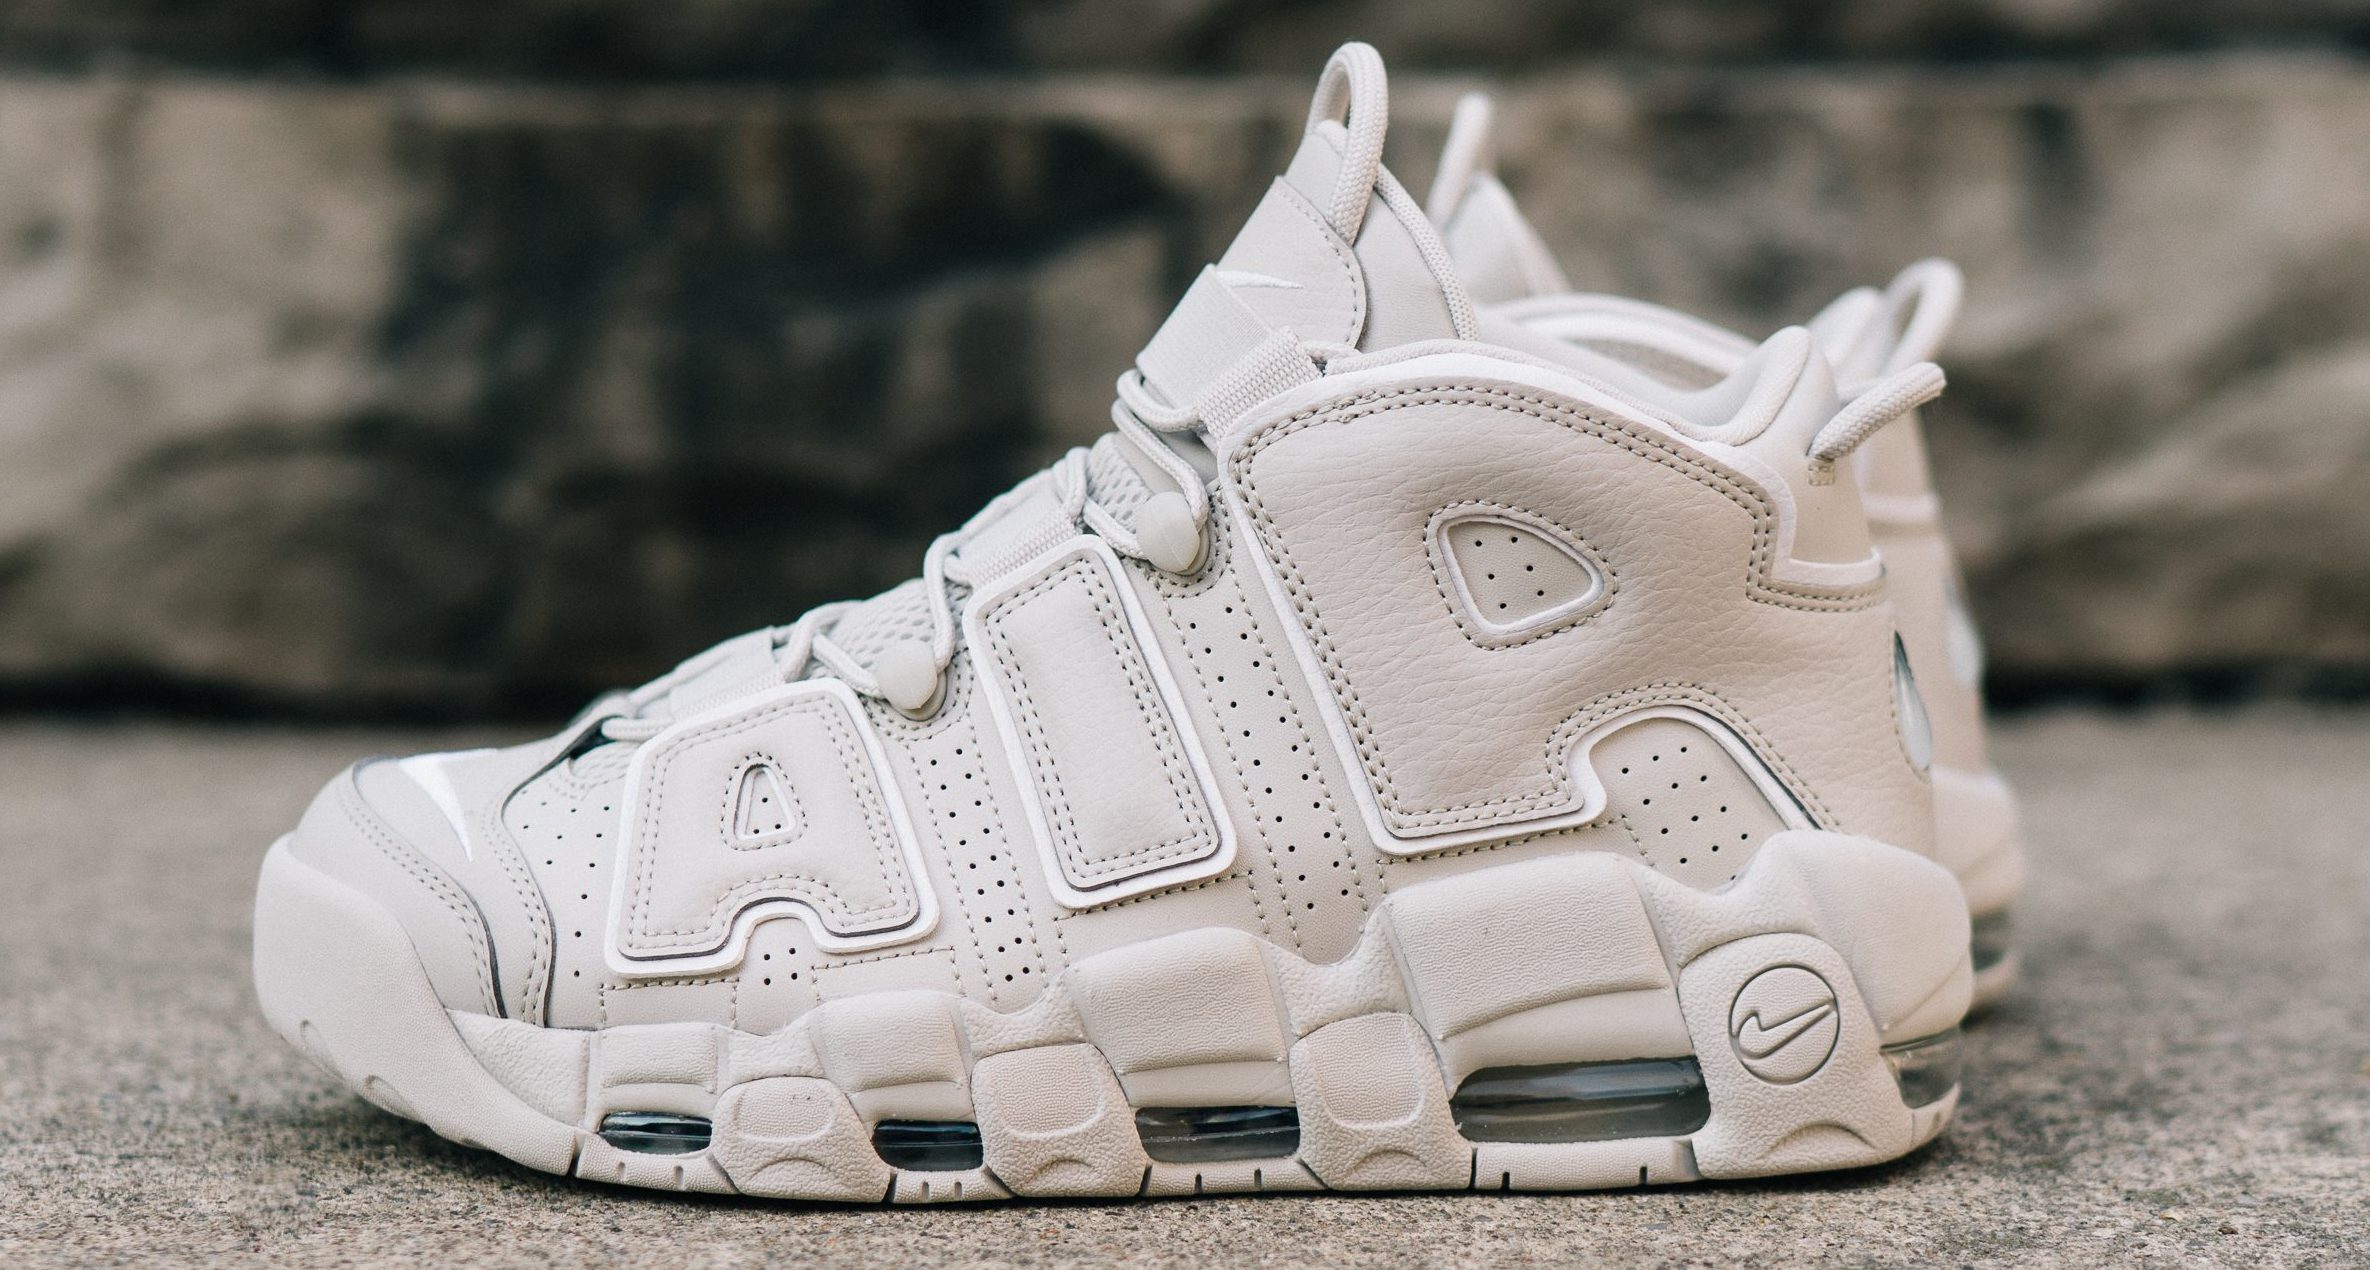 Nike Air More Uptempo u201996 Light Bone // Available Now